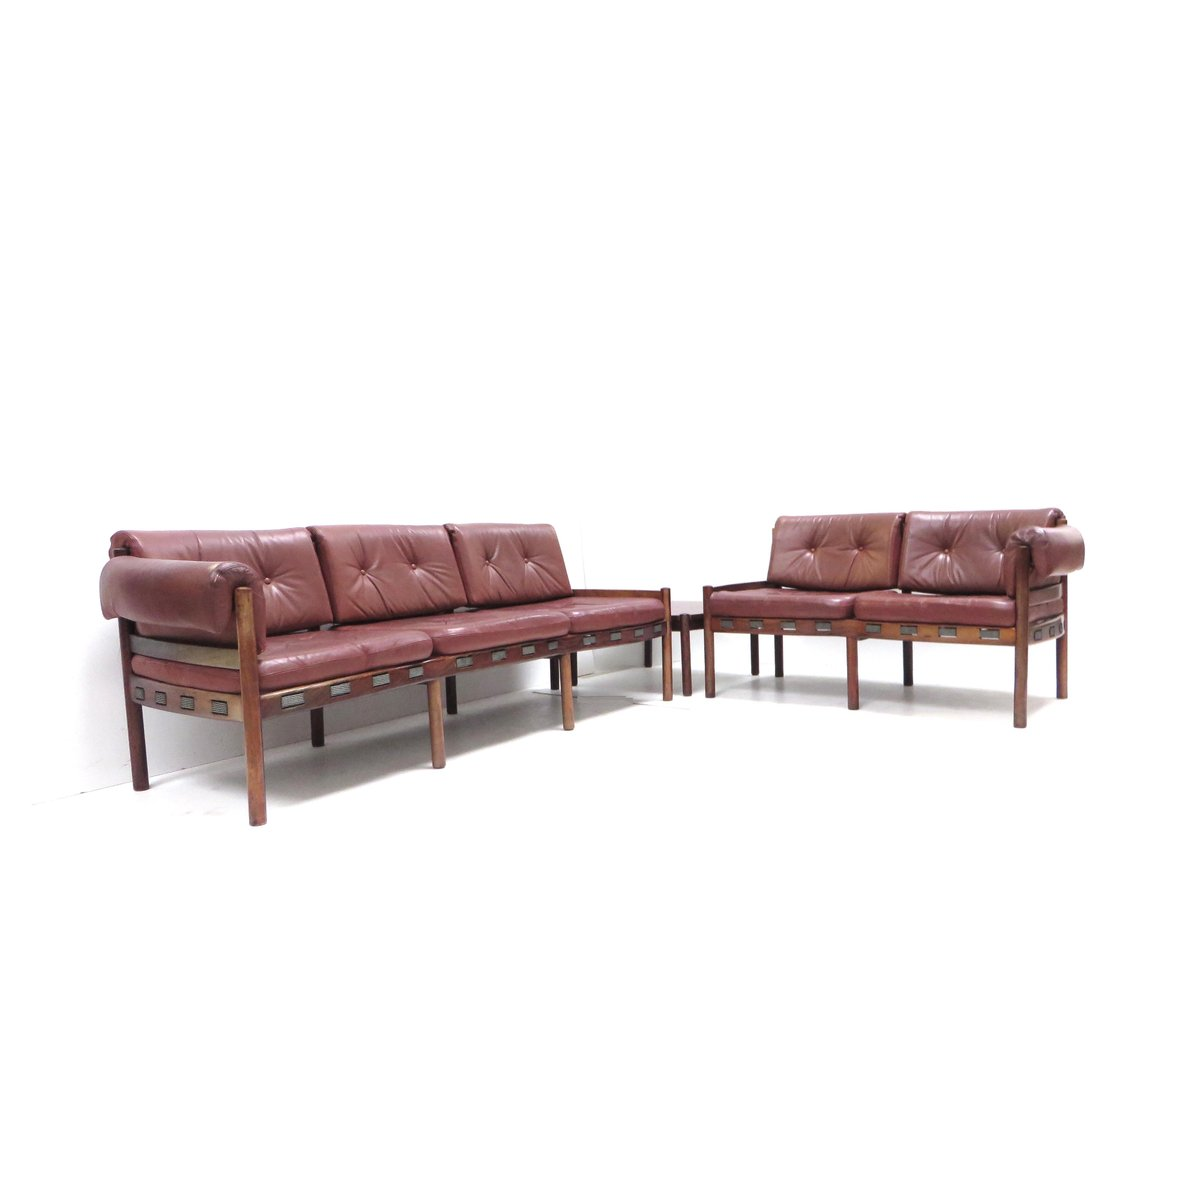 leather corner sofa spain chesterfield style velvet with table 1960s for sale at pamono